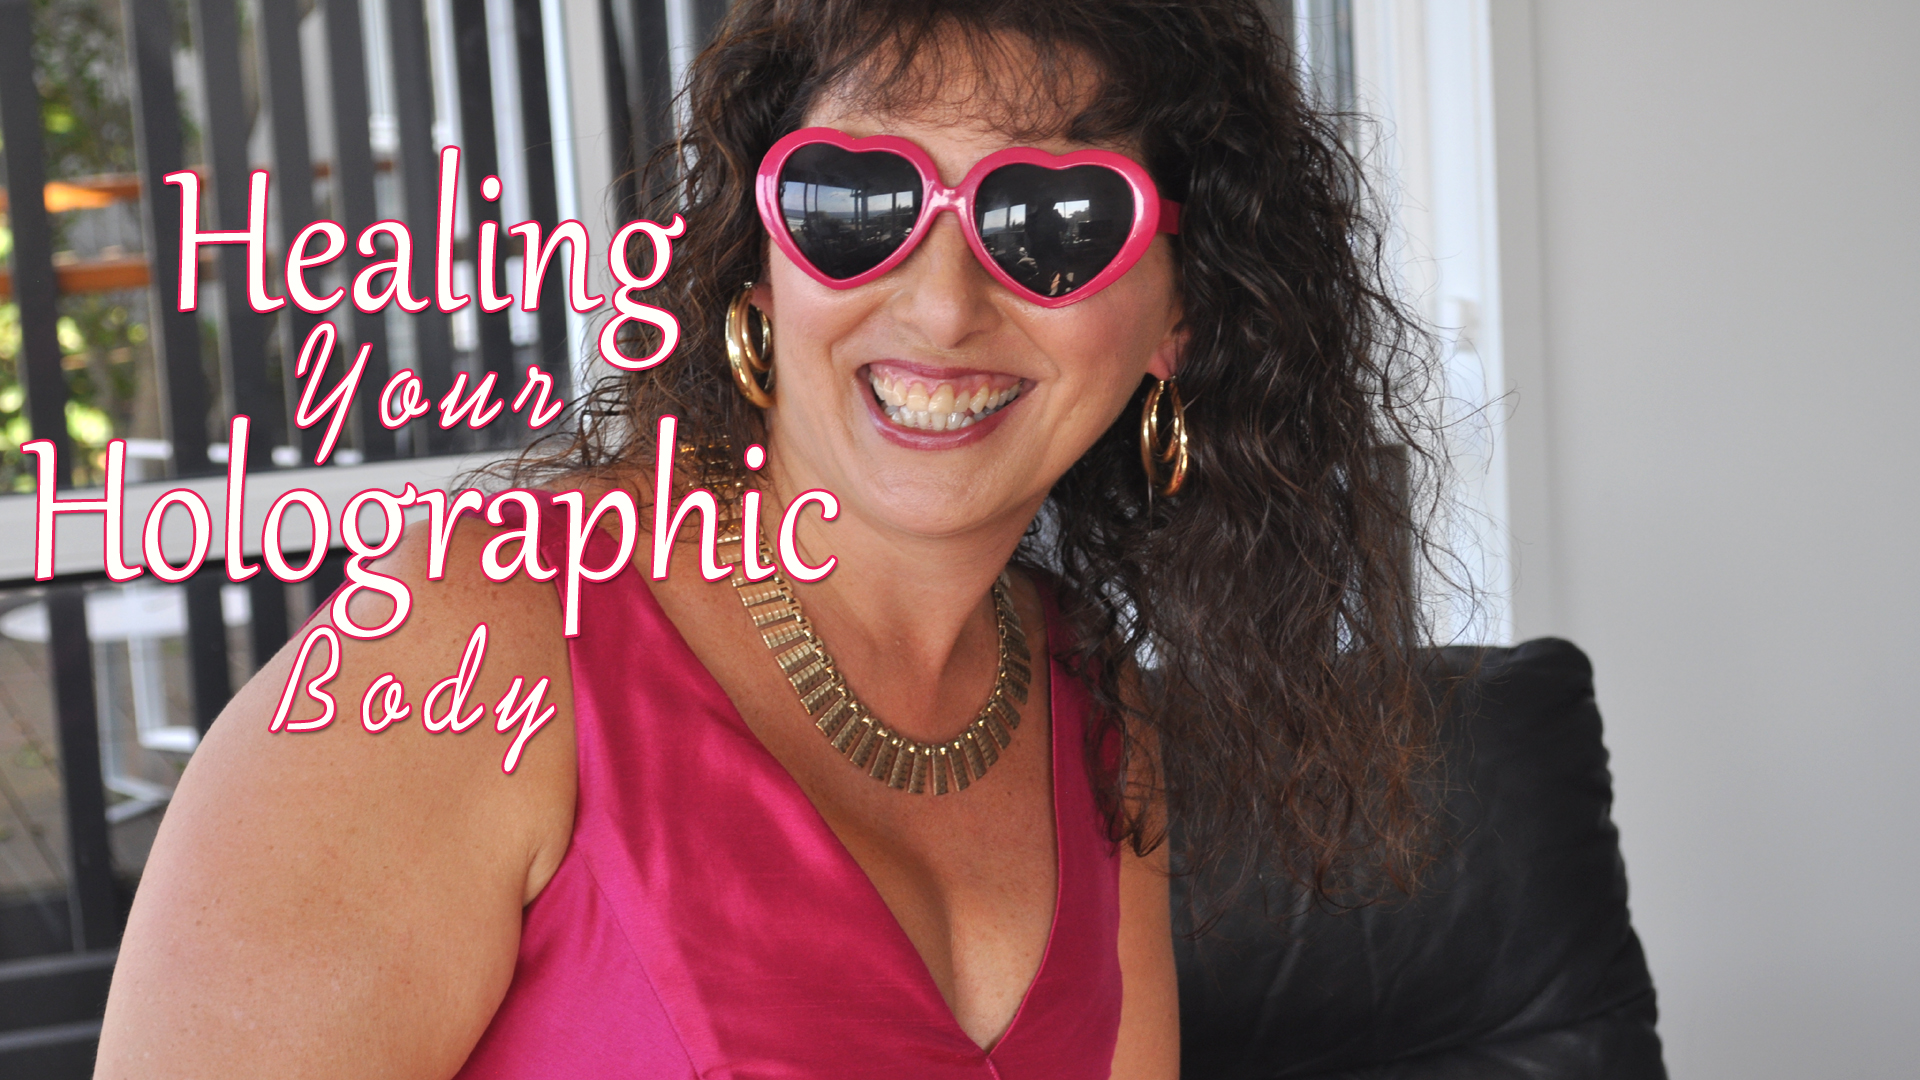 Healing Your Holographic Body – Medical Intuitive